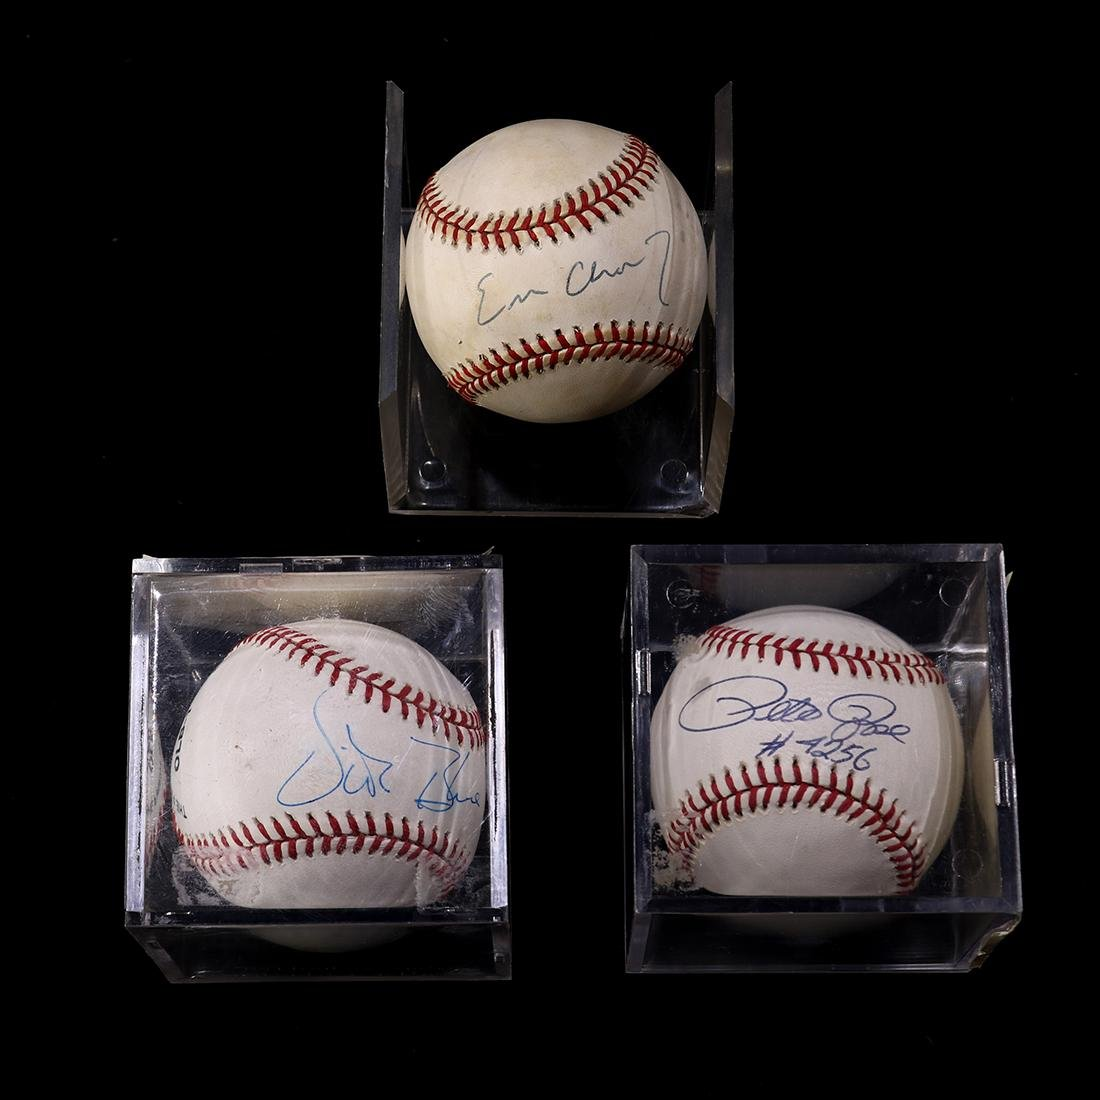 (lot of 3) Autographed collectible baseballs